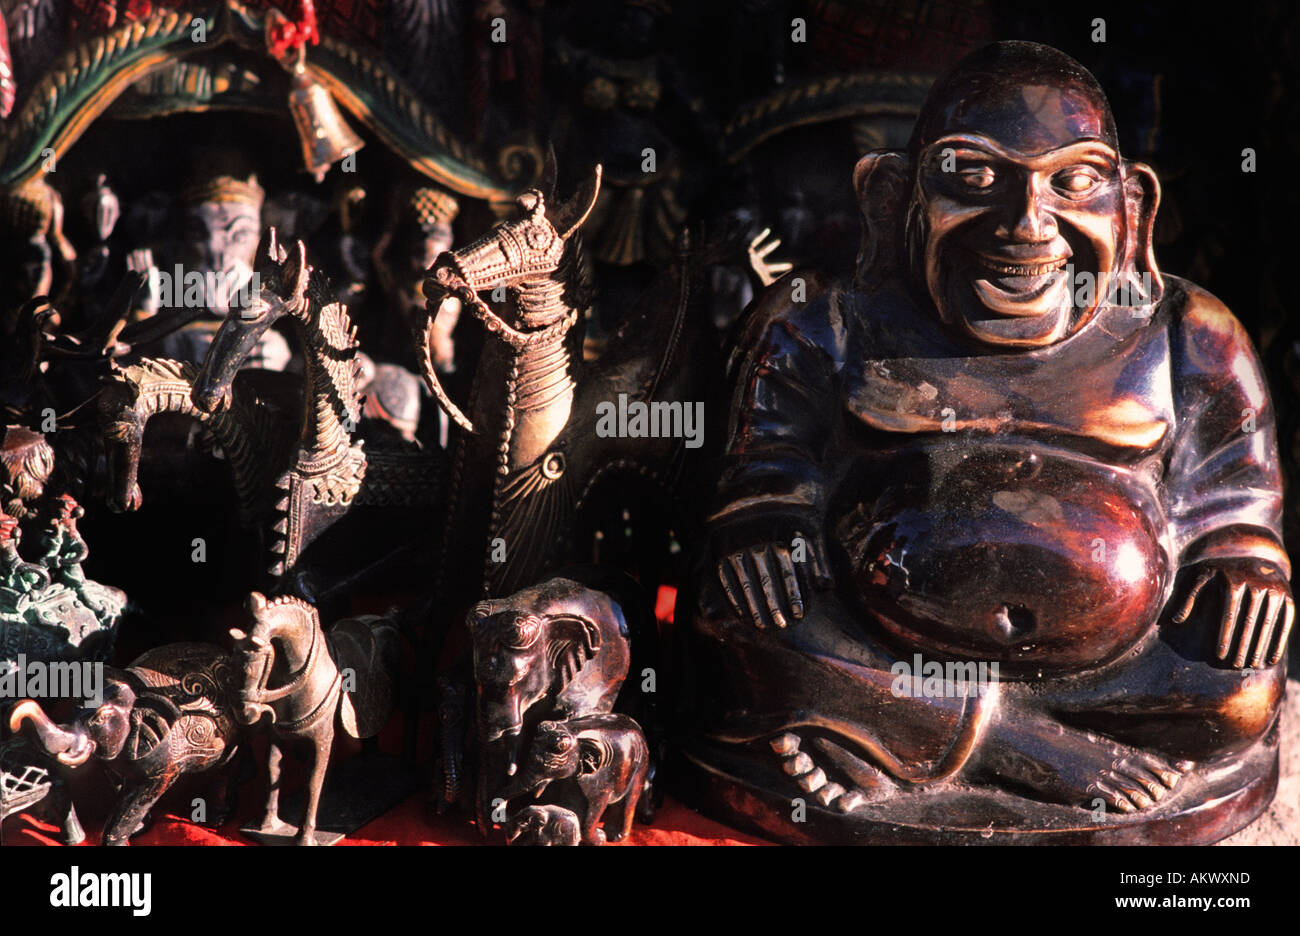 A selection of hindu and buddhist sculptures in brass and bronze offered to tourists on a market stall Leh Ladakh India - Stock Image